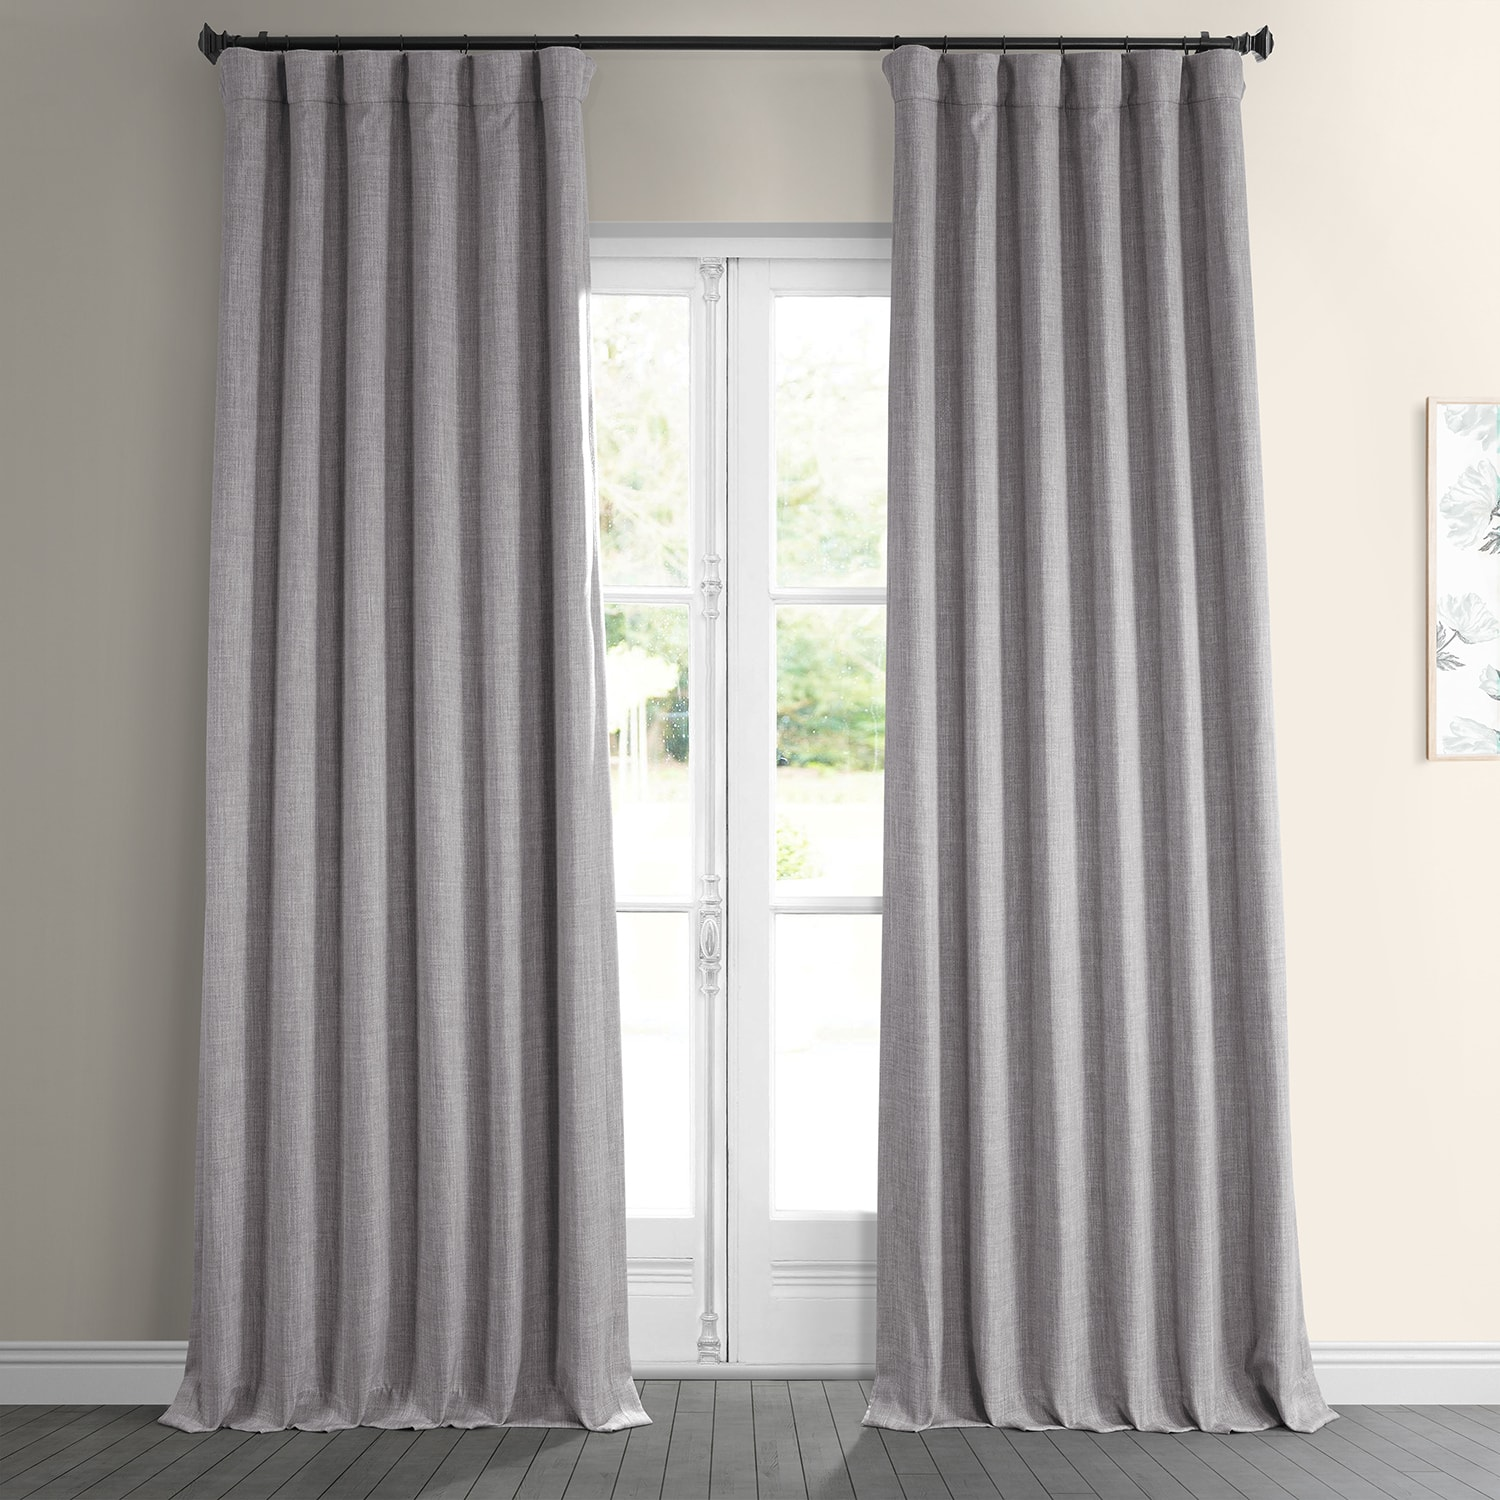 Clay Faux Linen Room Darkening Curtain